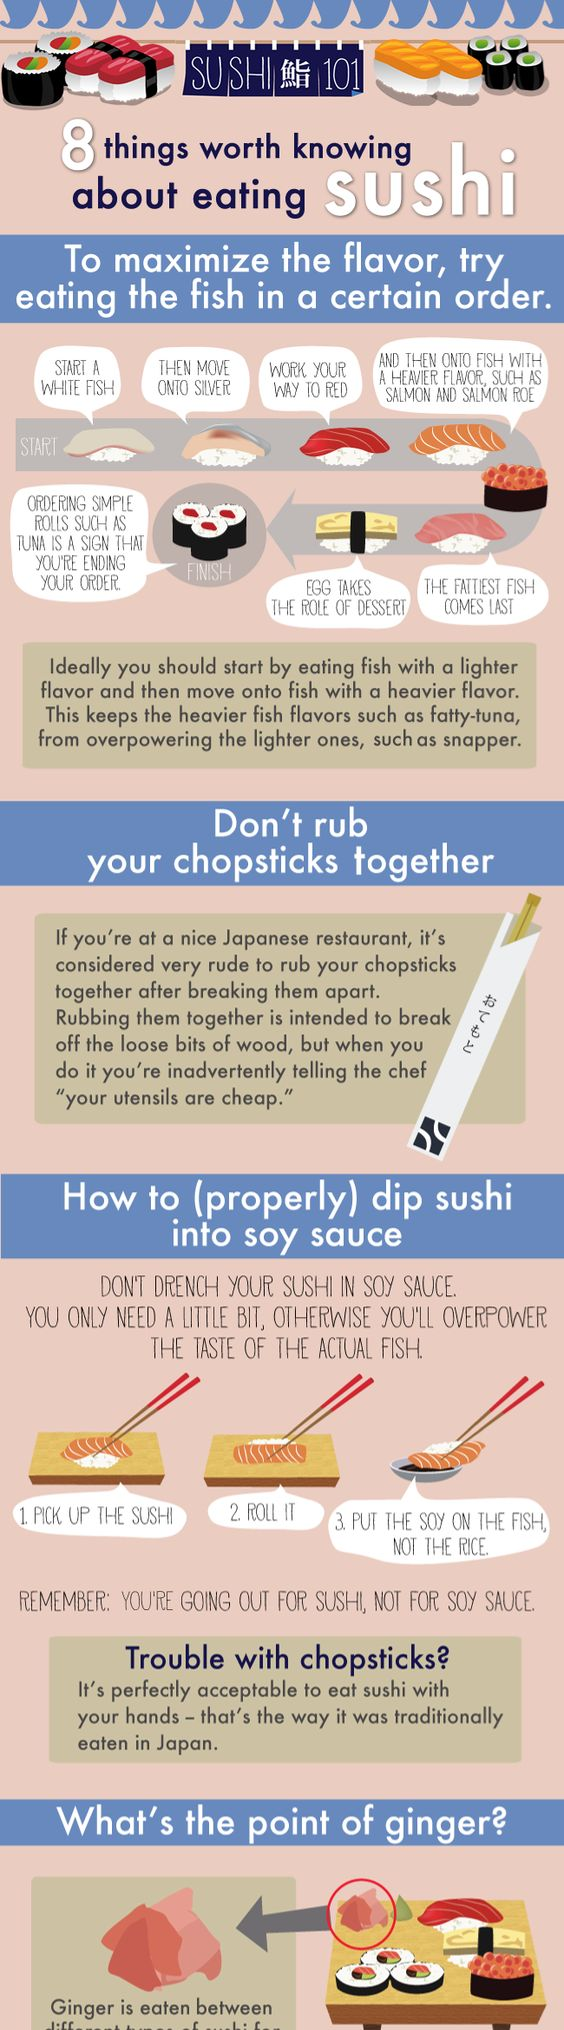 sushi eating infographic  1/3 http://www.businessinsider.com/the-right-way-to-east-sushi-2013-8